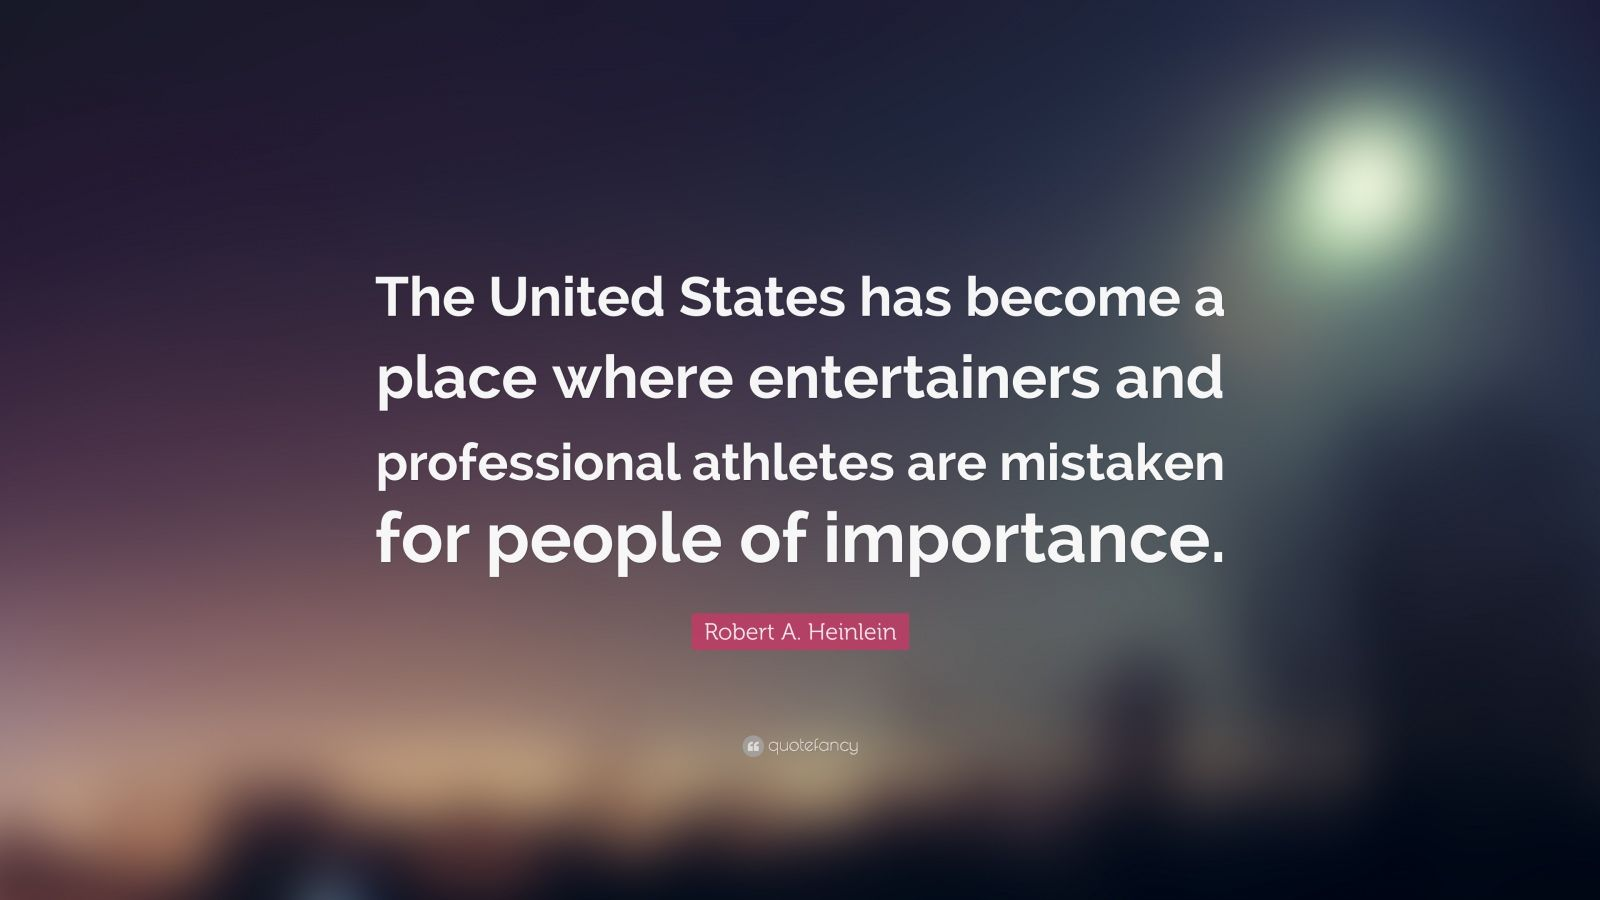 """Robert A. Heinlein Quote: """"The United States has become a place where entertainers and professional athletes are mistaken for people of importance."""""""